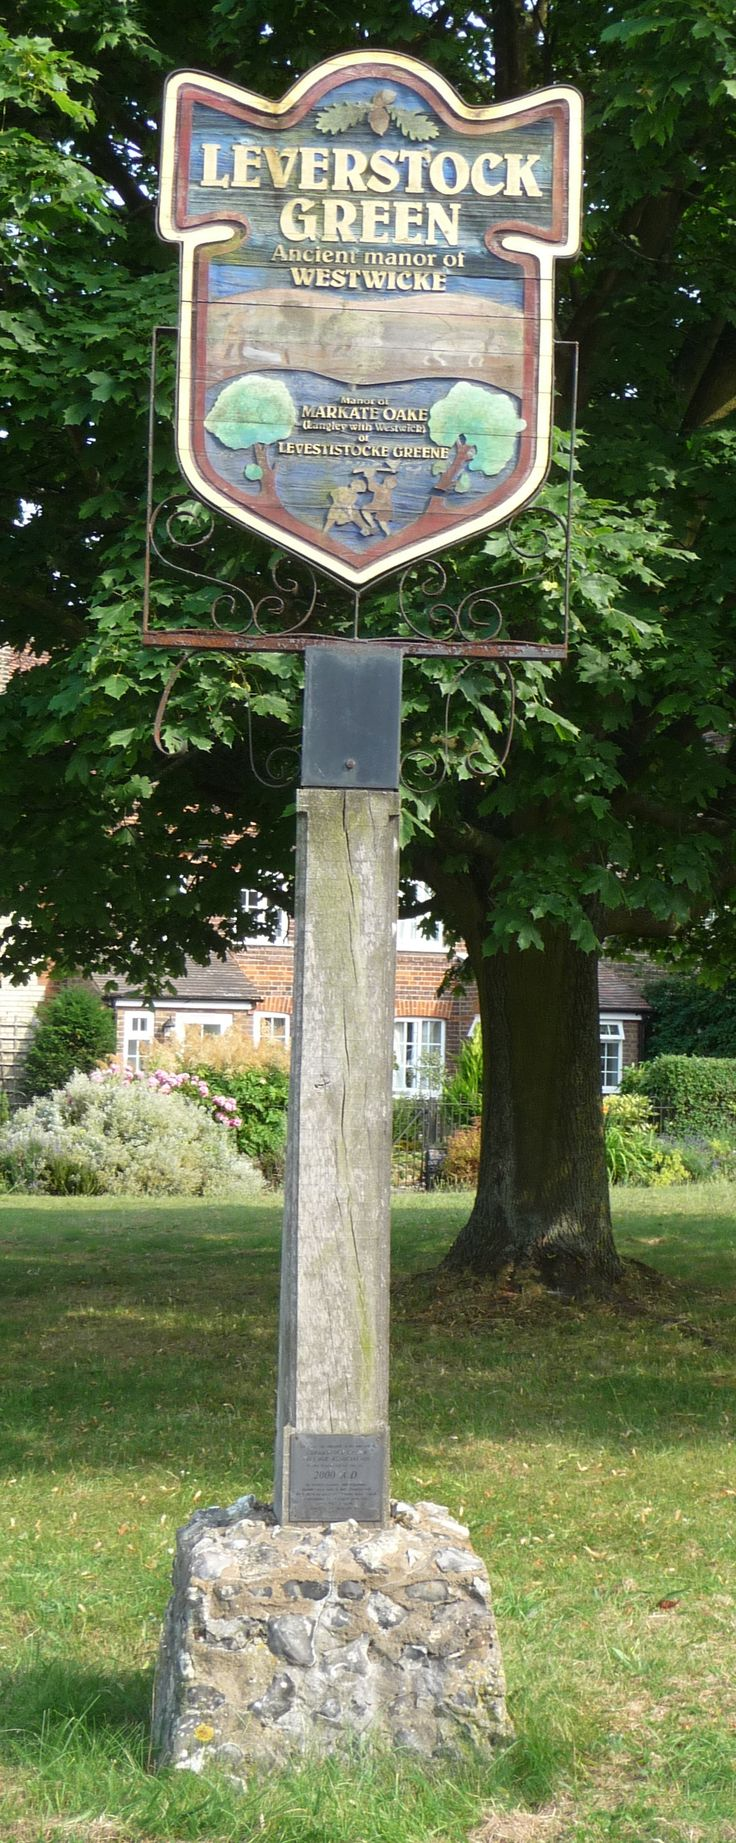 Leverstock Green village sign